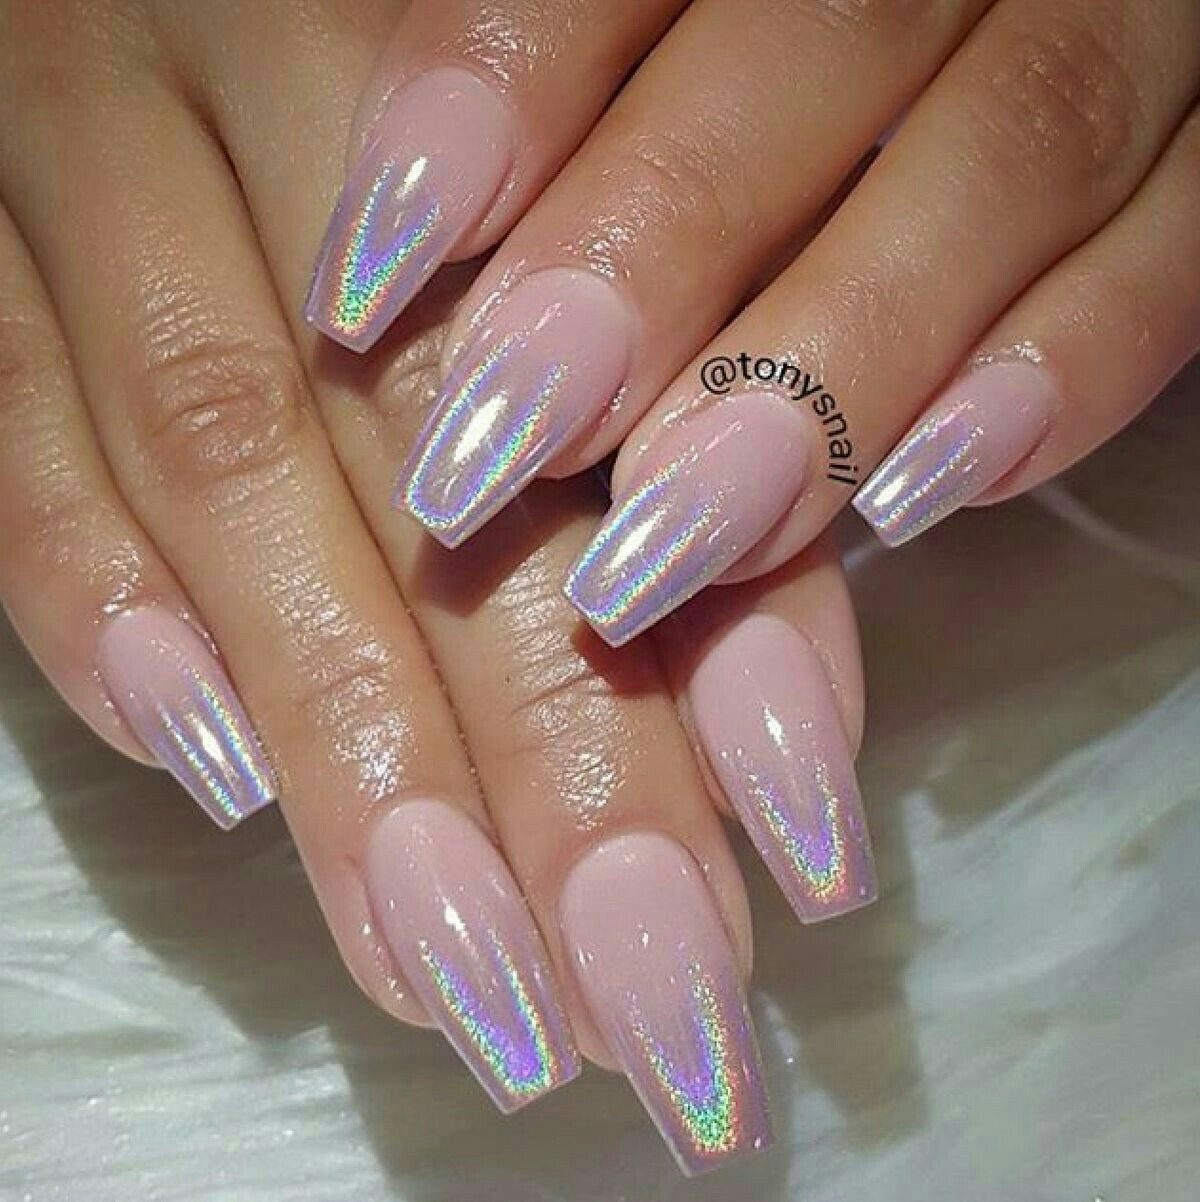 Pin by Mary Di on nails | Pinterest | Nail inspo and Manicure